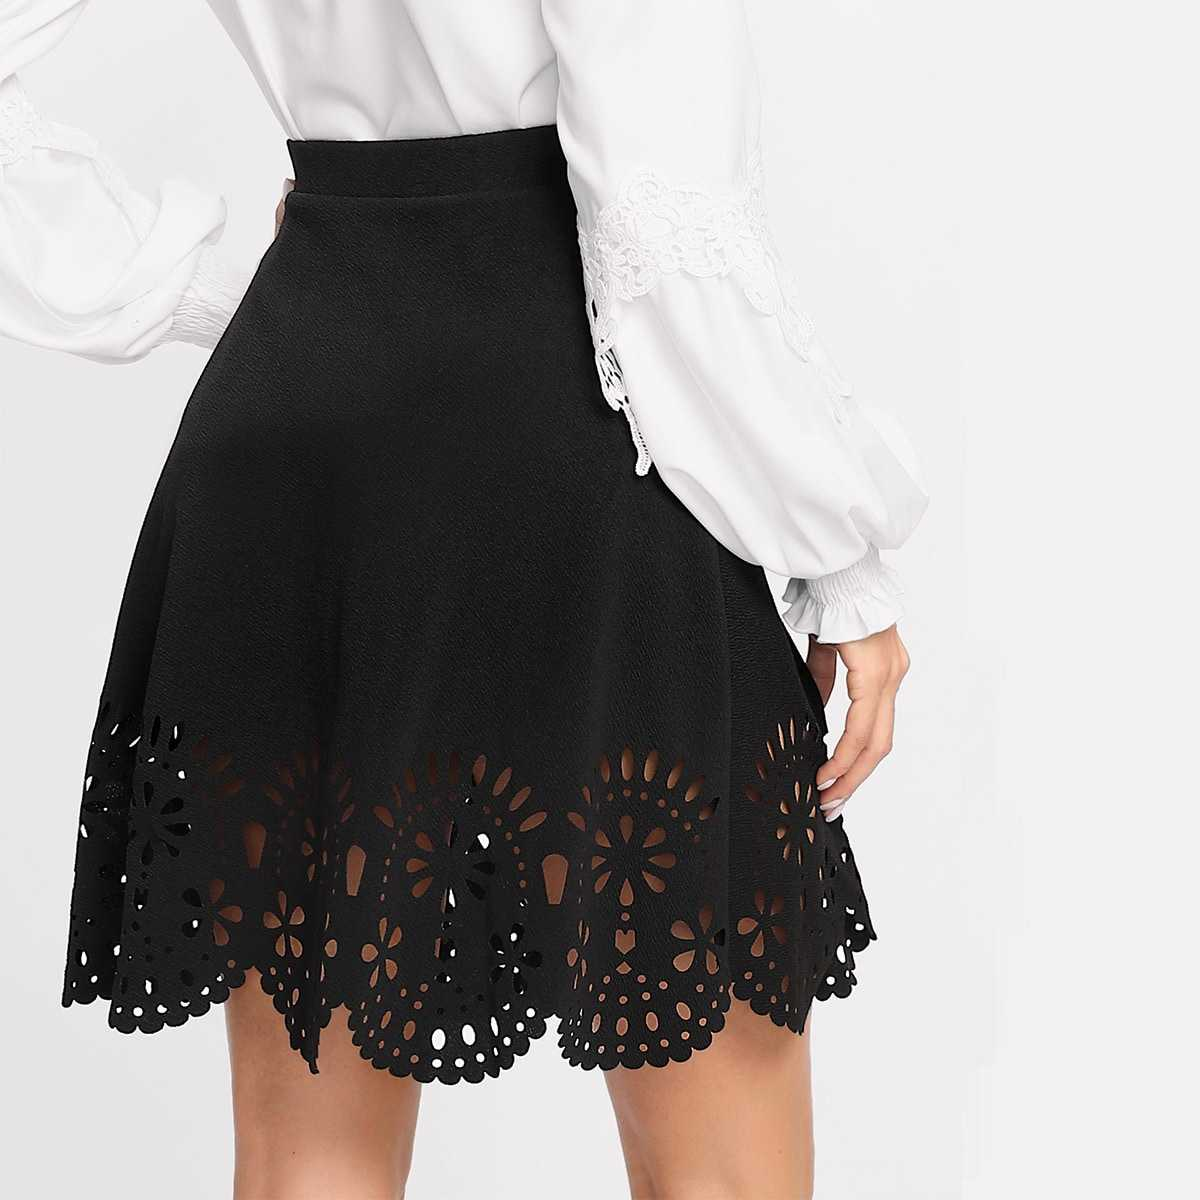 Scalloped Laser Cut Trim Skirt in Black by ROMWE on GOOFASH